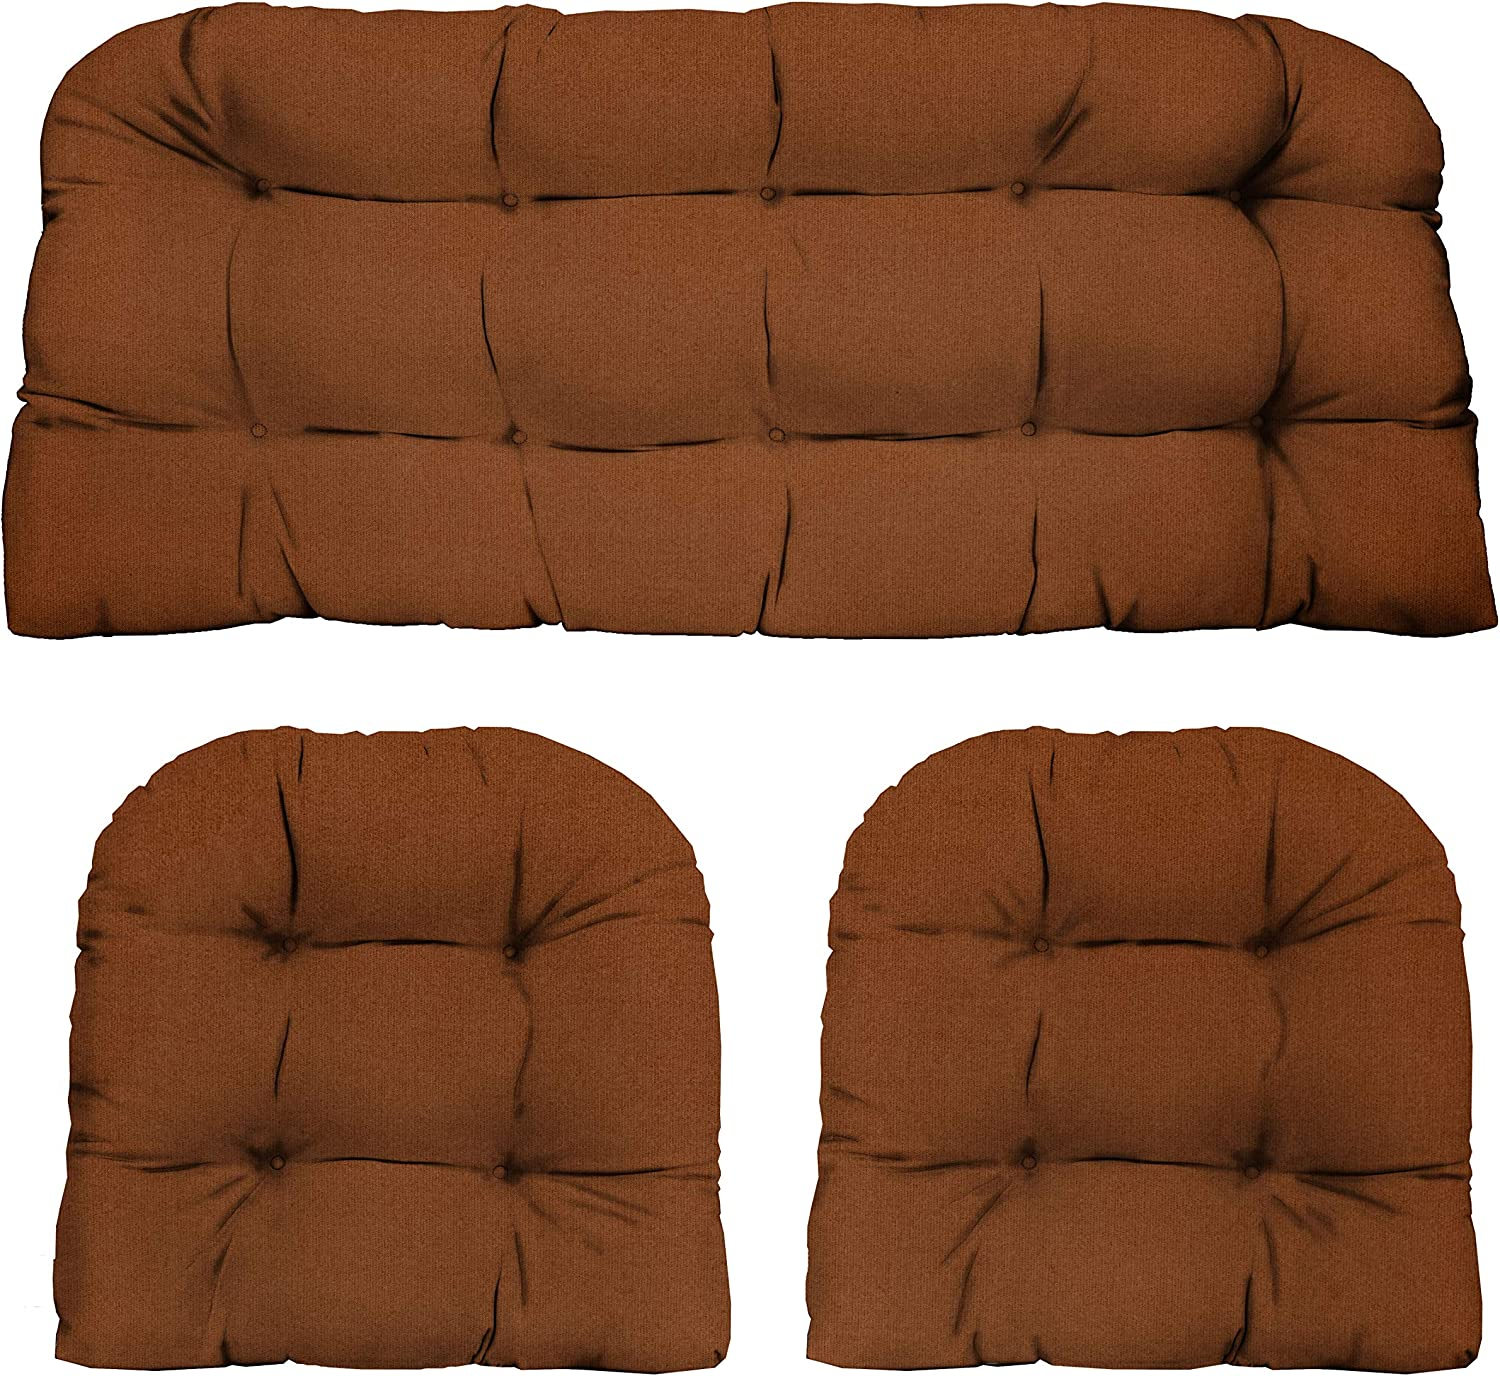 "RSH Décor Indoor Outdoor 3 Piece Tufted Wicker Settee Cushions 1 Loveseat & 2 U-Shape Weather Resistant ~ Choose Color (Cinnamon Canvas Poly, 2- 19""x19"" 1- 41""x19"")"